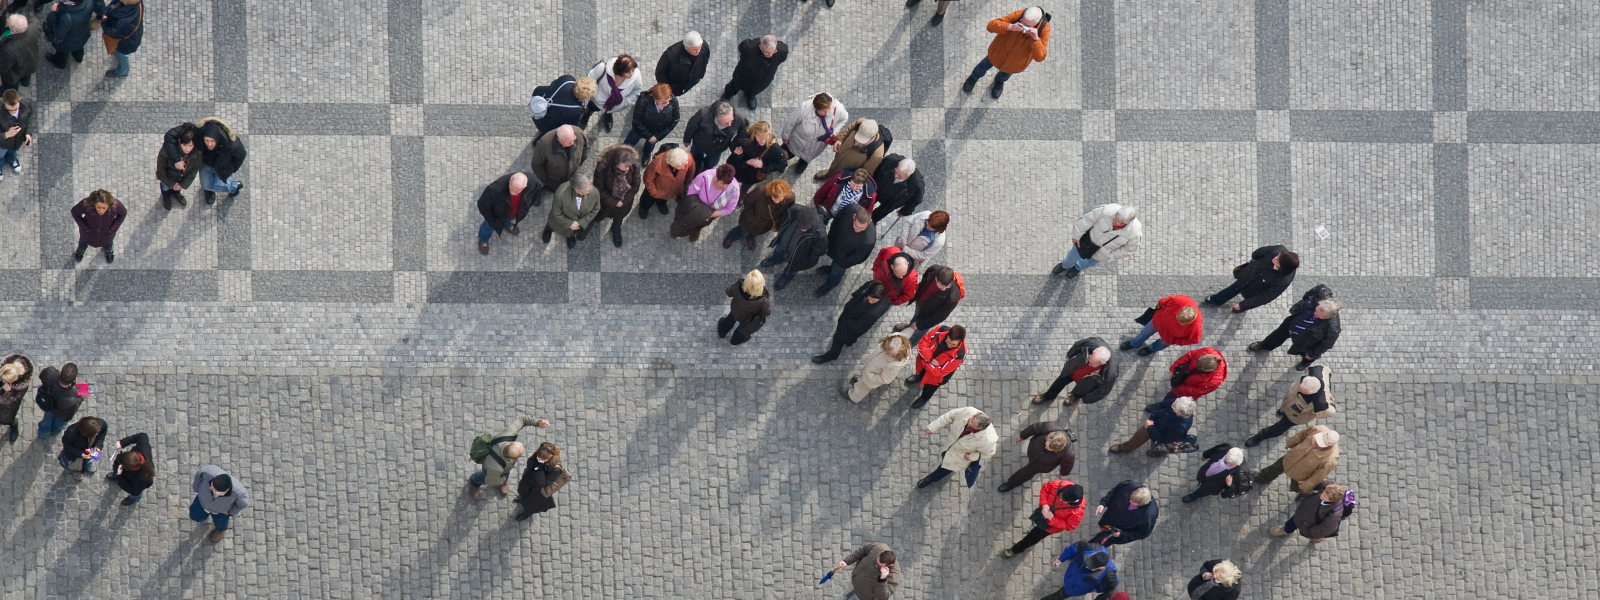 crowd in street viewed from above